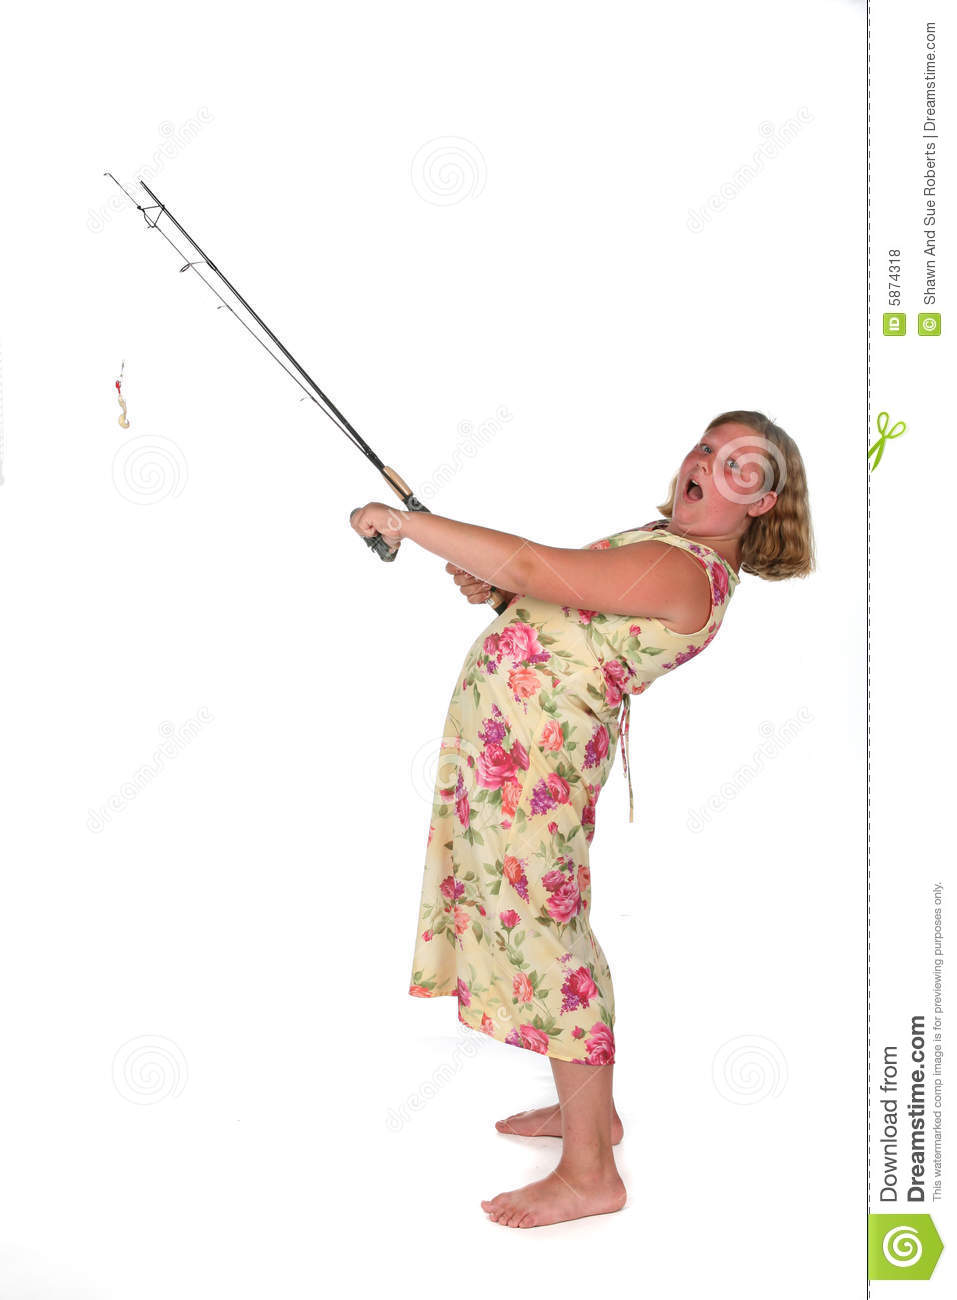 Girl with fishing rod royalty free stock photos image for Girl fishing pole